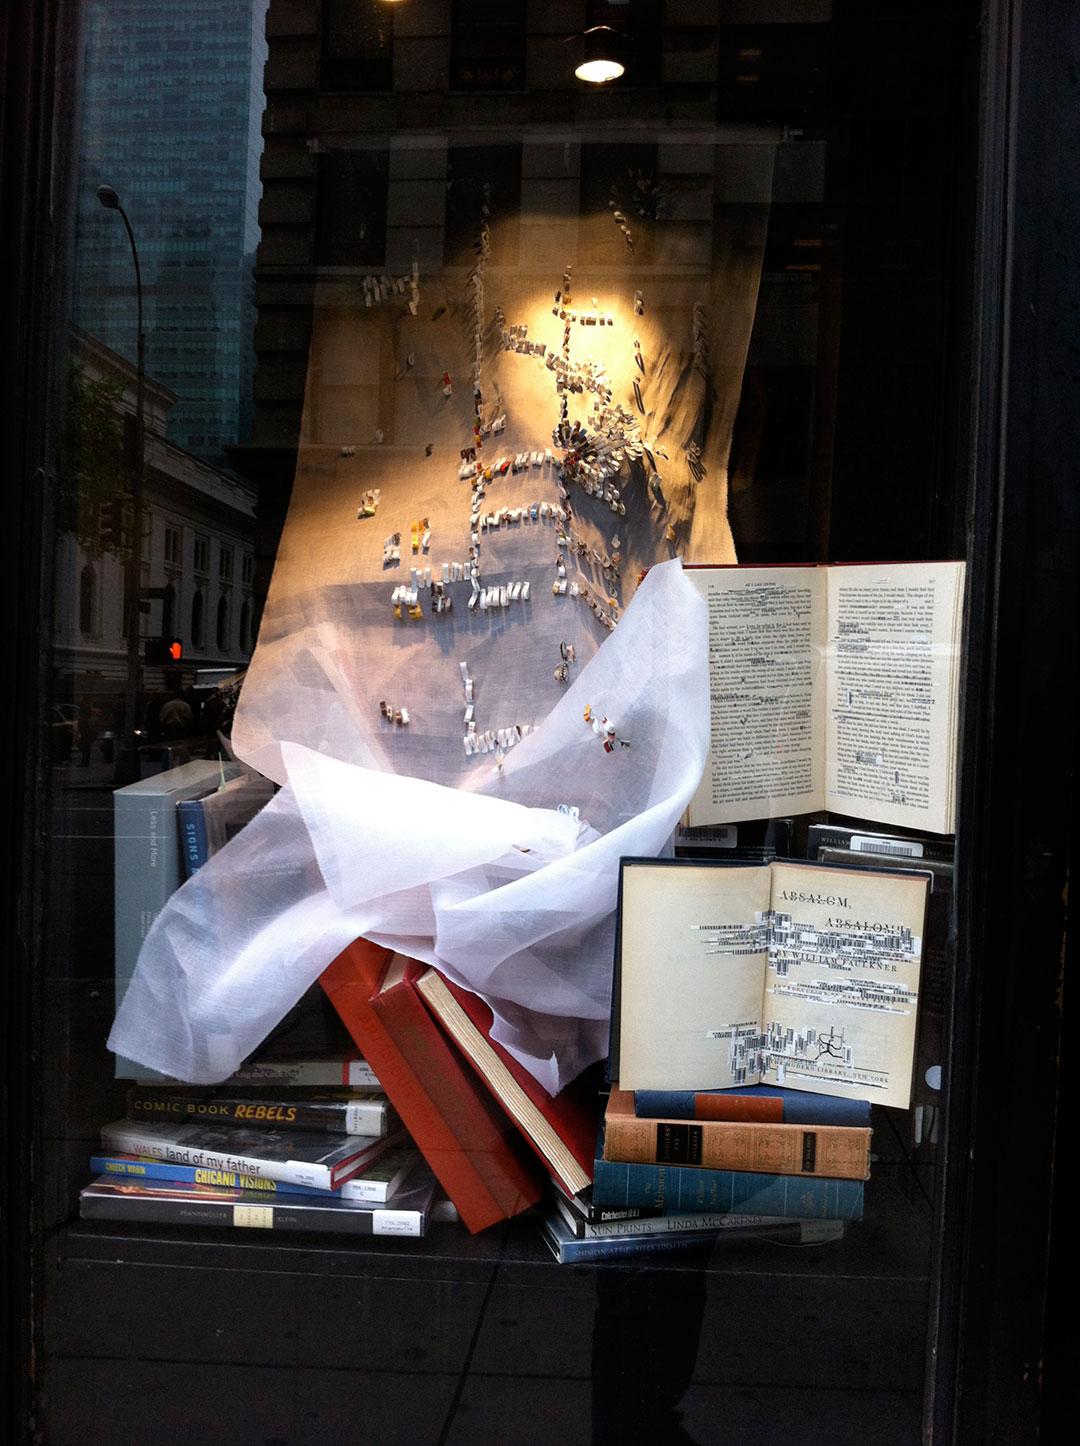 Shredded: Off the Grid, panel 1, installation view at the Manhattan Midown Public Library windows..